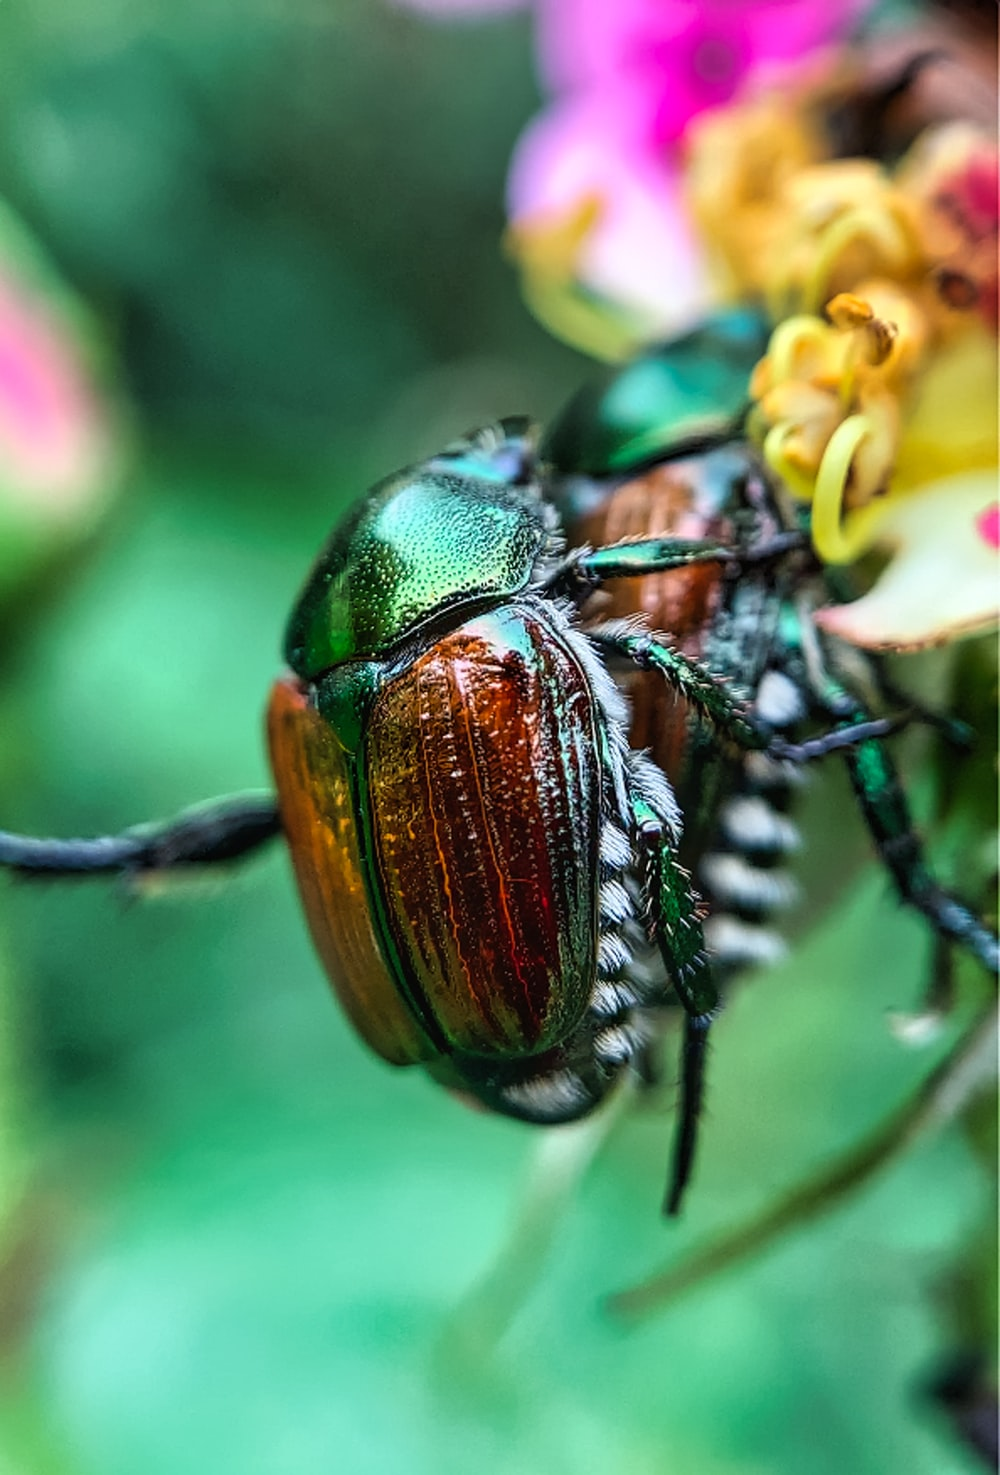 green and black beetle perched on yellow flower in close up photography during daytime